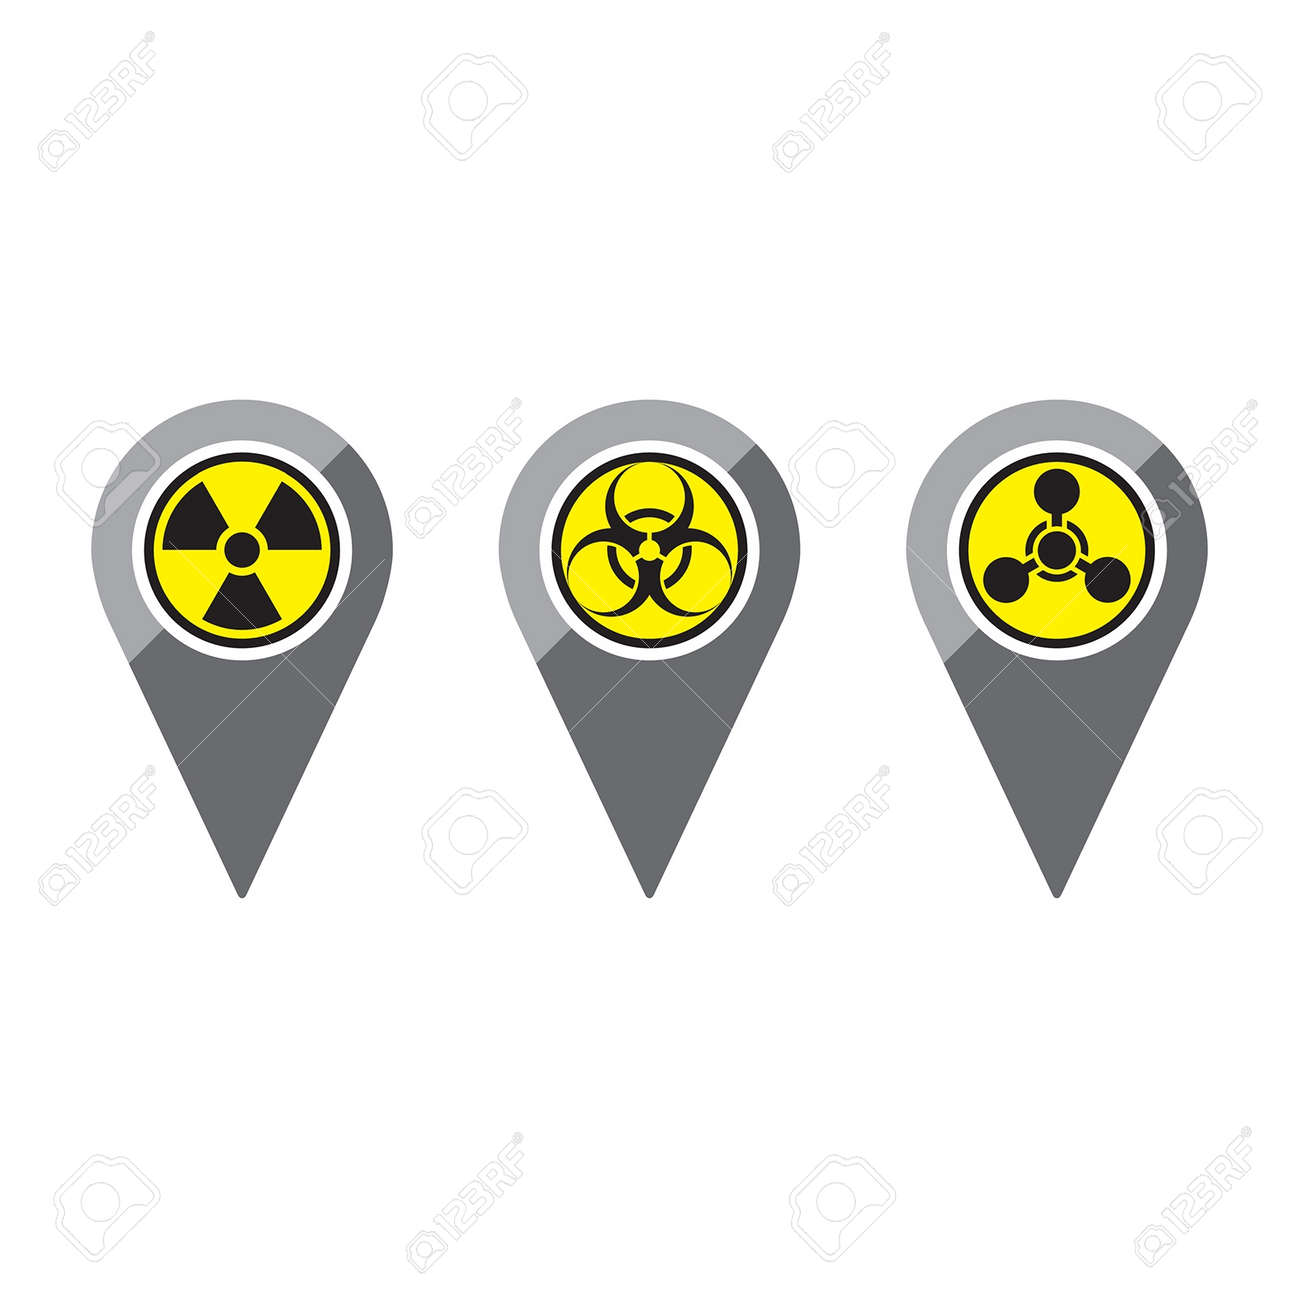 three simple clean map pins in a flat or metro graphical style three simple clean map pins in a flat or metro graphical style representing various warnings